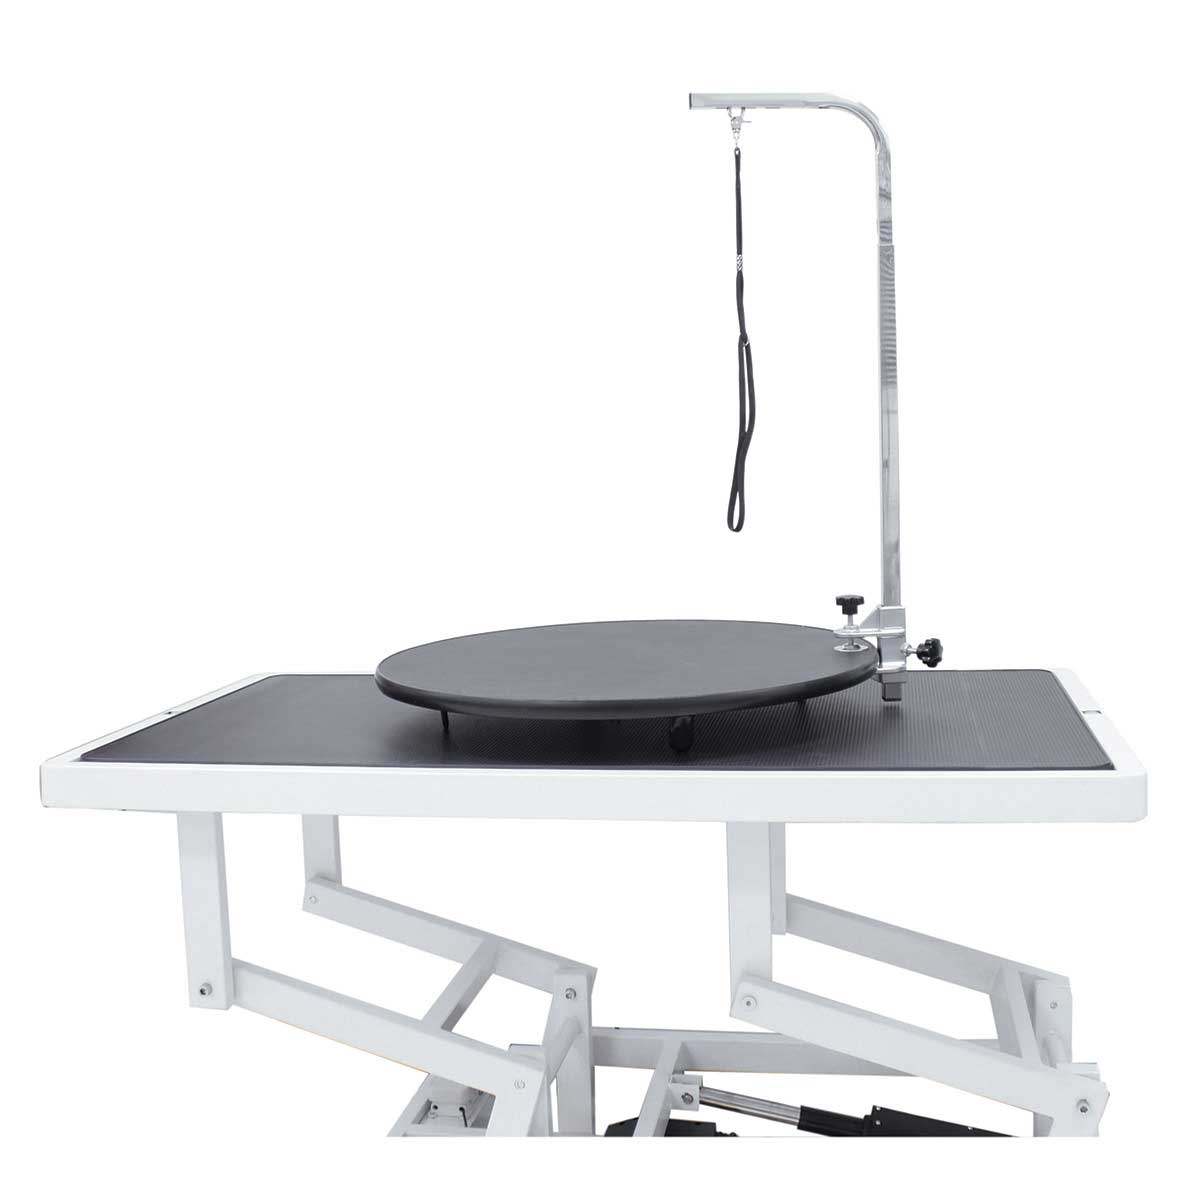 Paw Brothers Professional Groom 360 Rotating Table Top 23 inch diameter 3 inch height